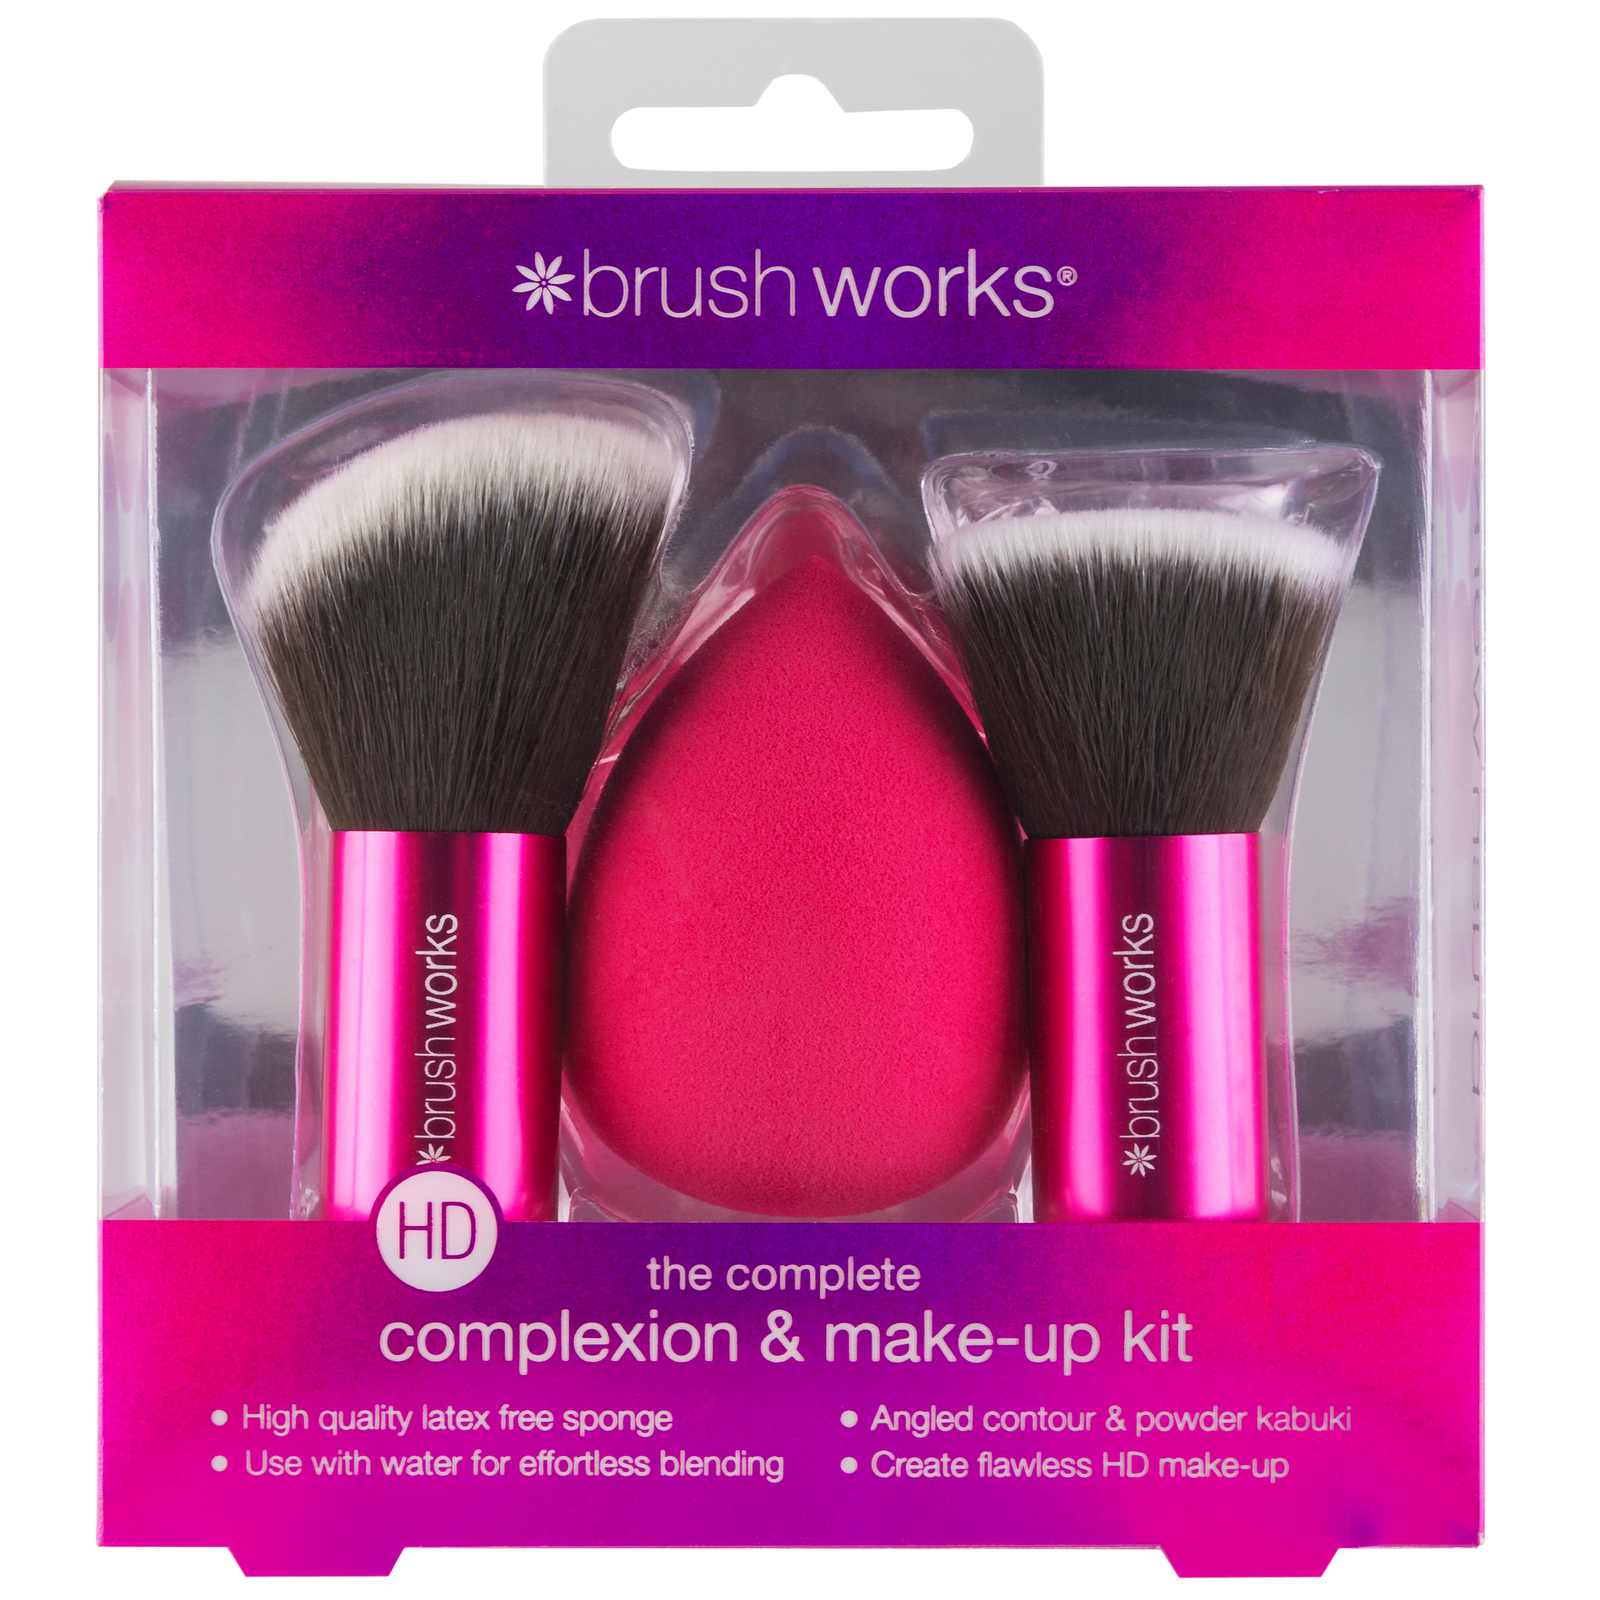 Brushworks Makeup Sponge HD Complexion & Make-up Kit